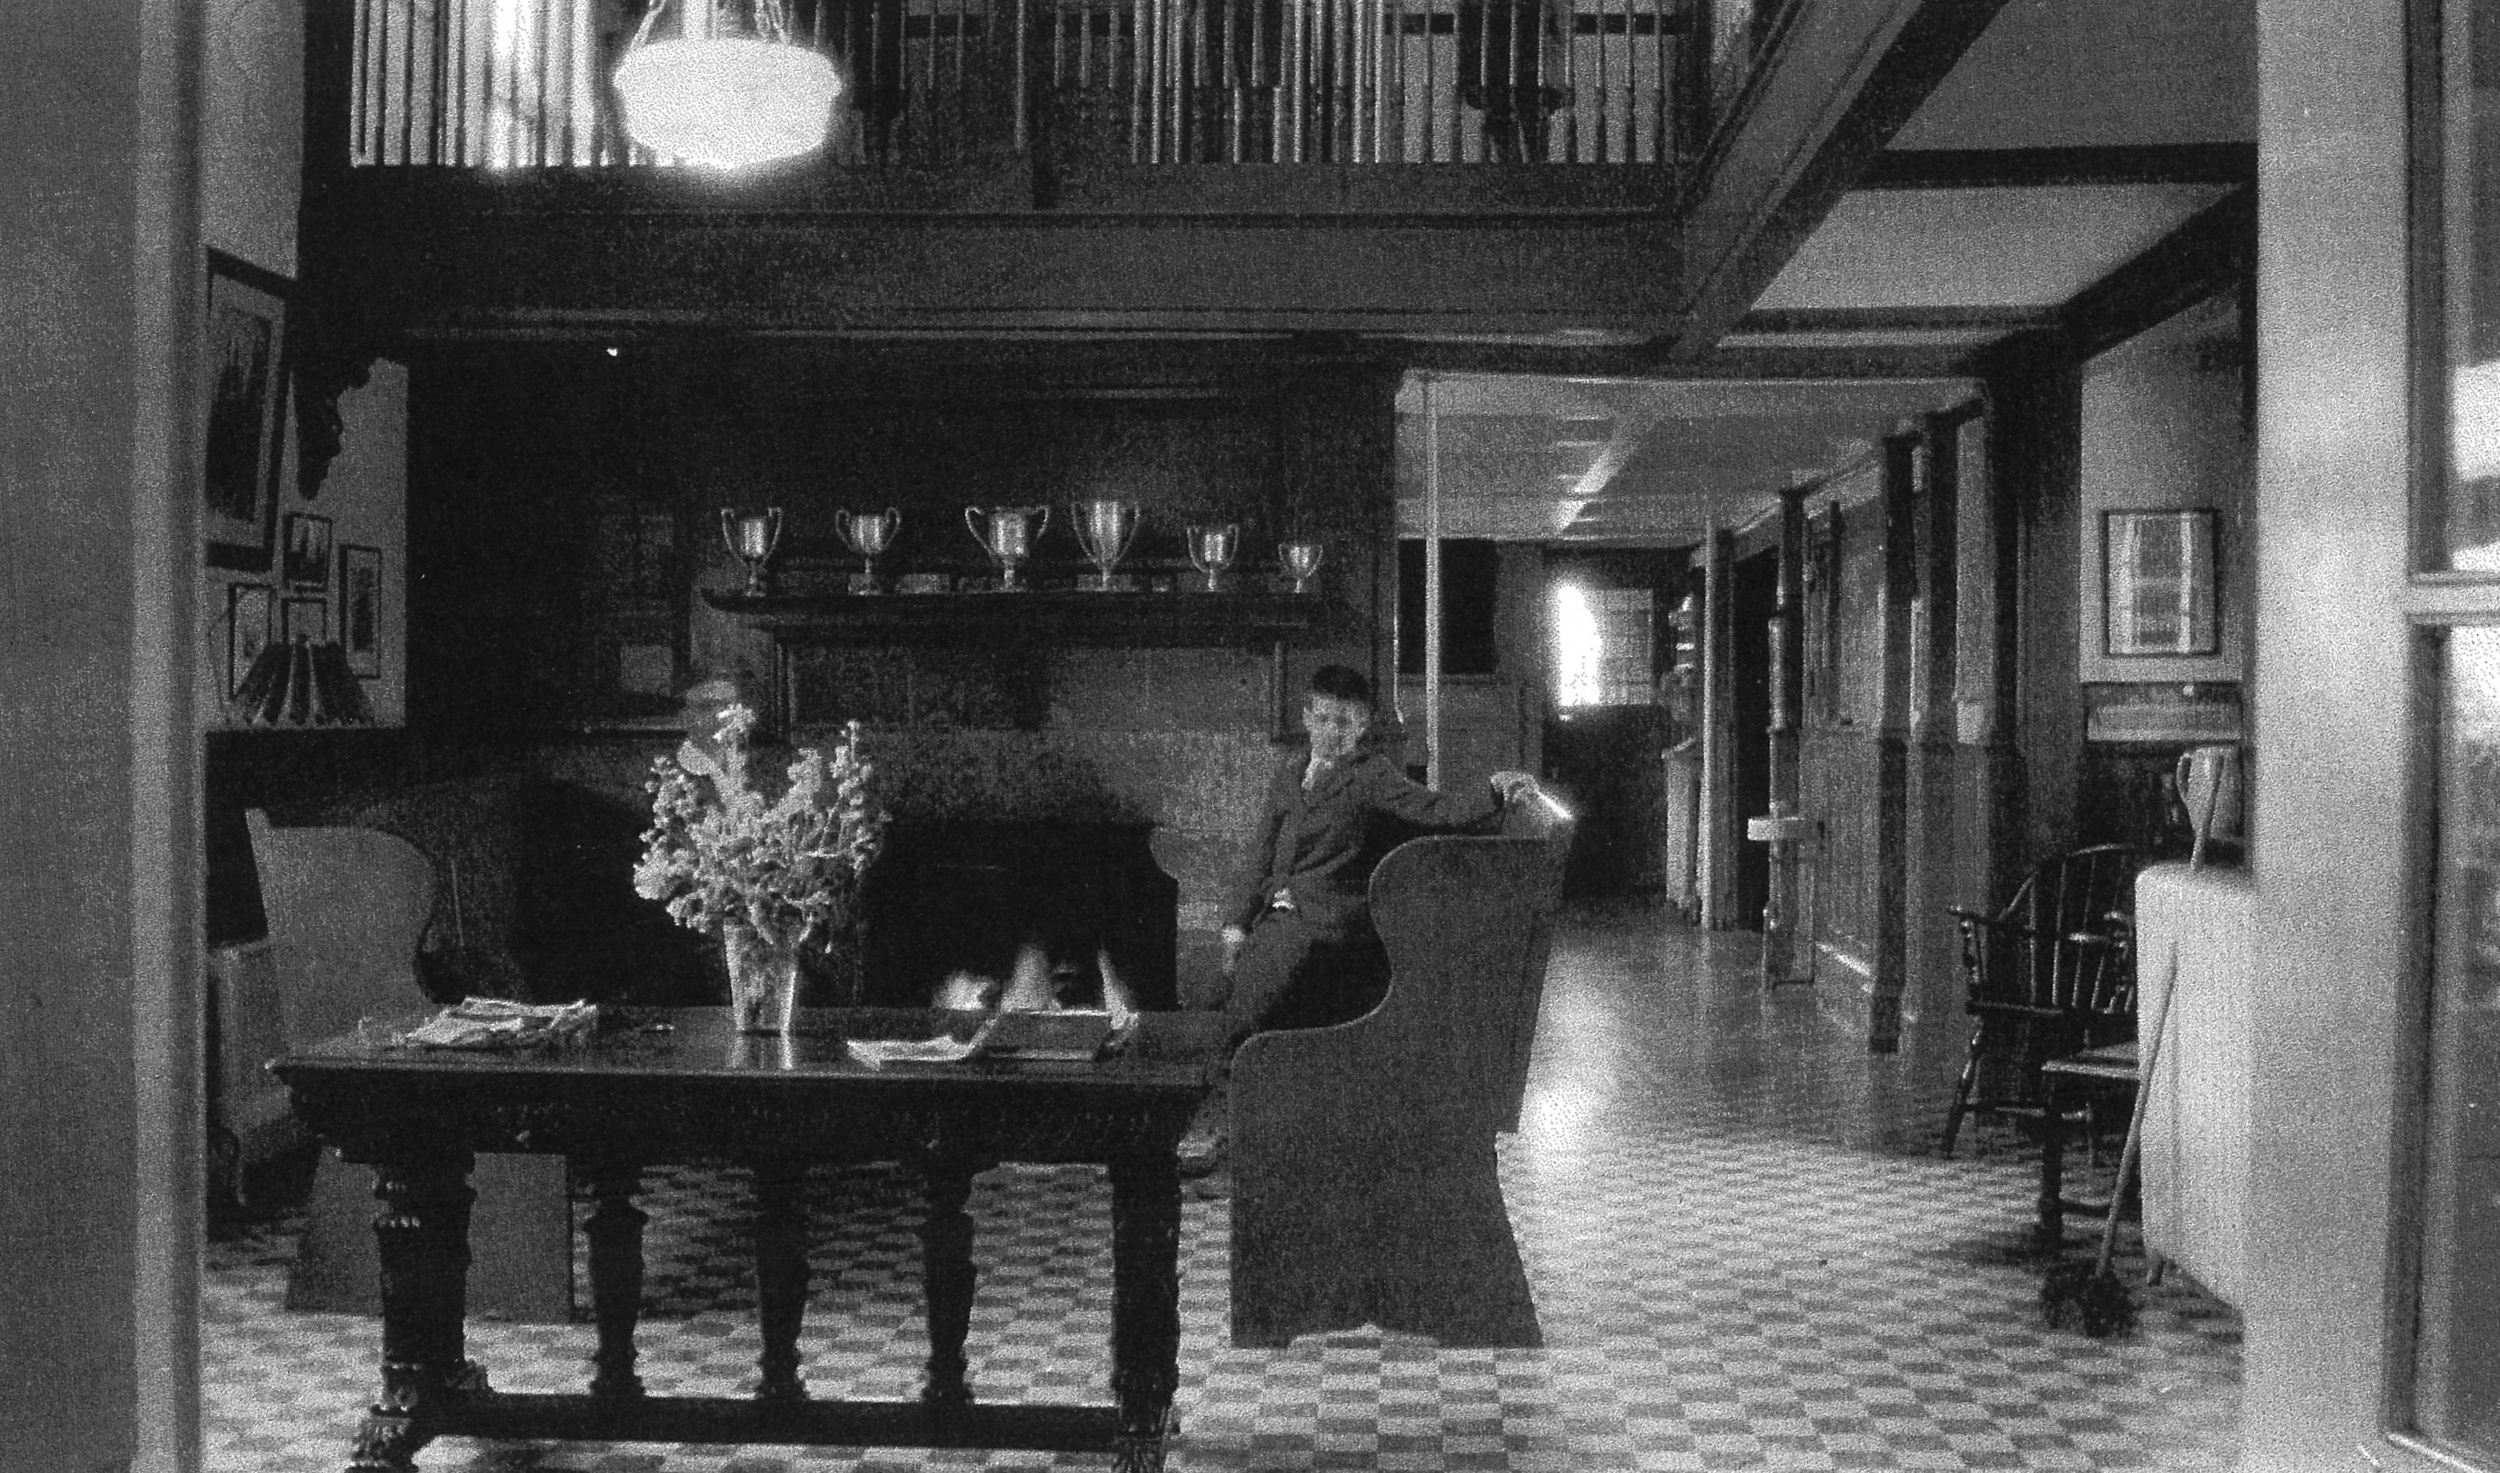 The Harrison family Library became a lounge for the new Rectory School, after 1926.  Note the white pipe column in all three photos: here it holds up the old library balcony,